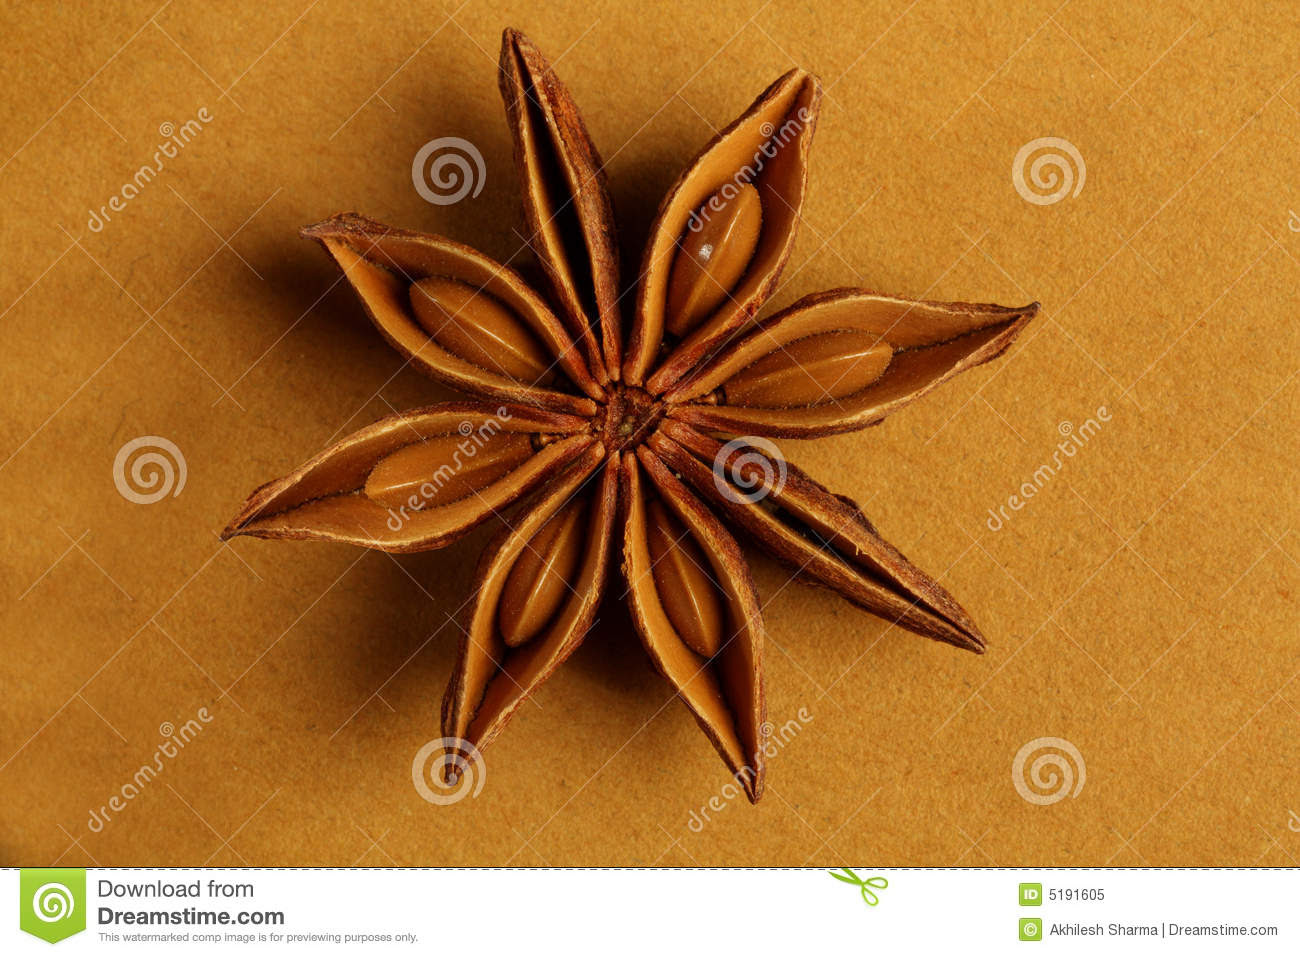 anise star shaped indian spice 5191605